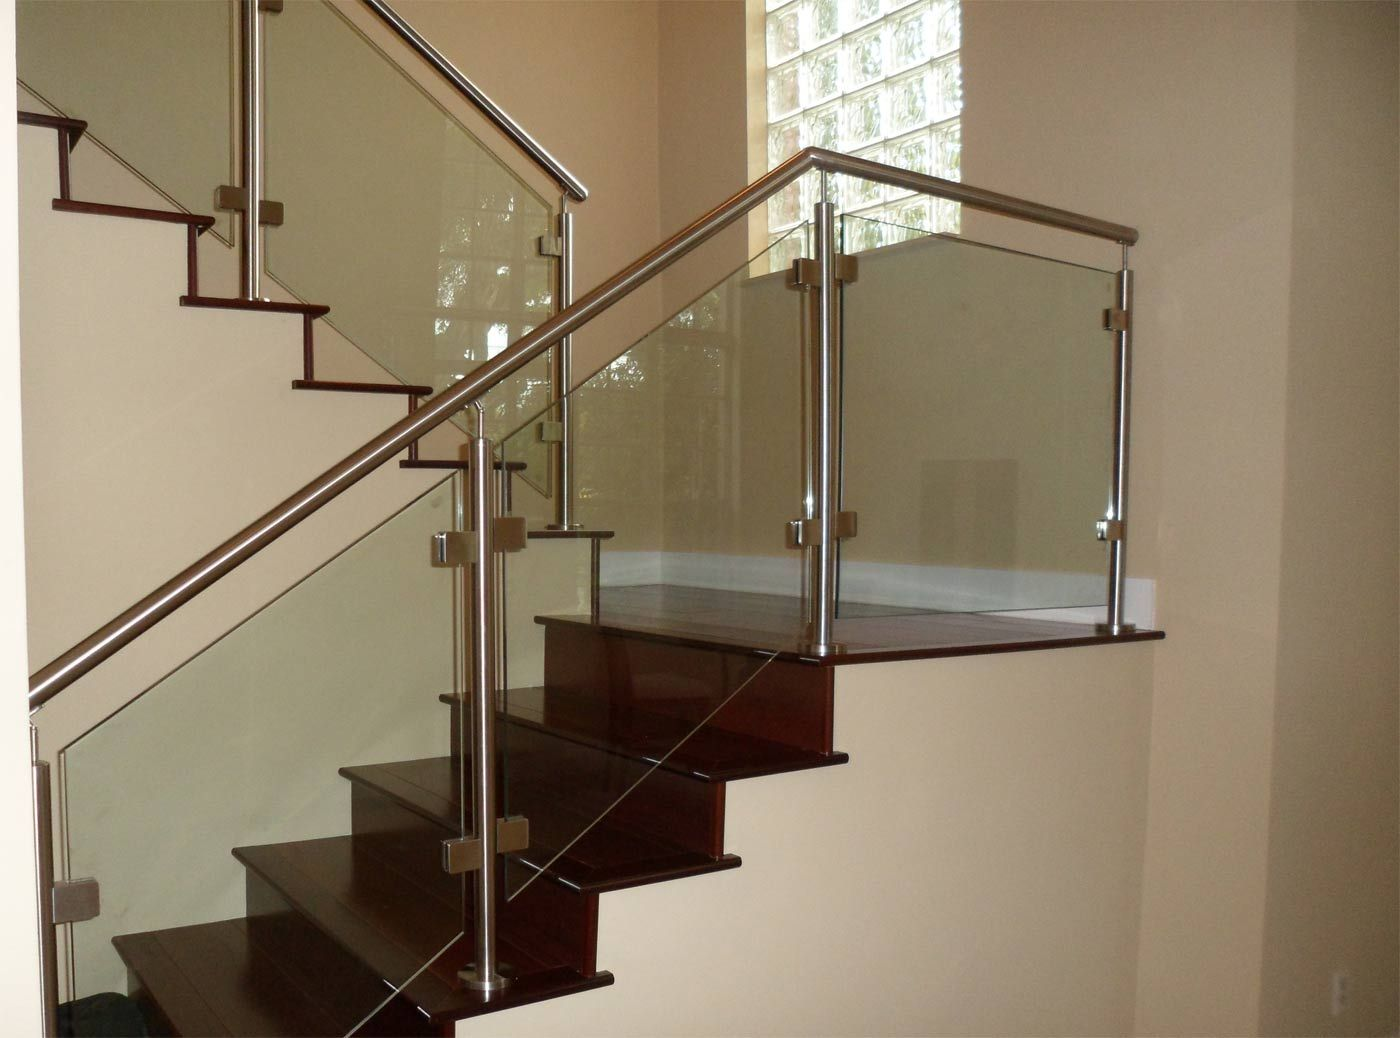 miami stairs | glass railings | stainless railings | wood railings